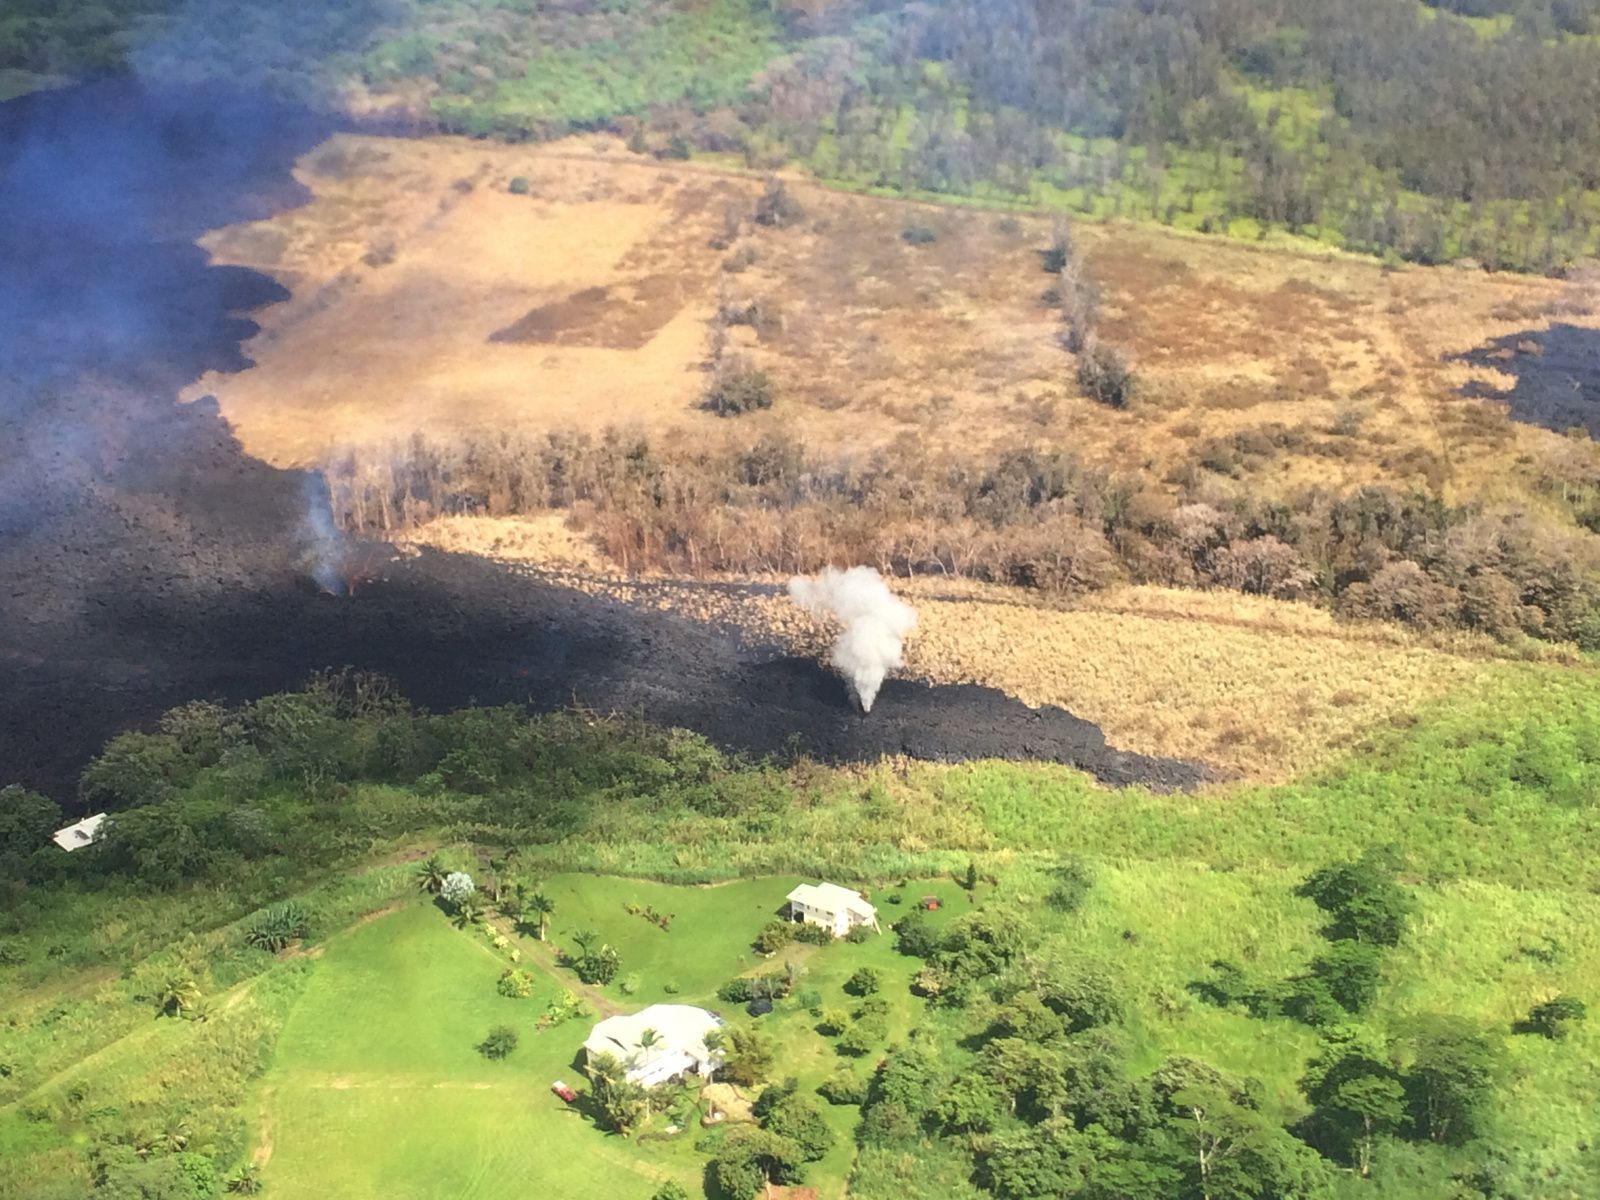 2018.05.14 Kilauea - East Rift One - 14.05.2018 / 2.30pm - Steam Jets on fissure 17 in the Active Fountaining Zone - Photo HVO - USGS